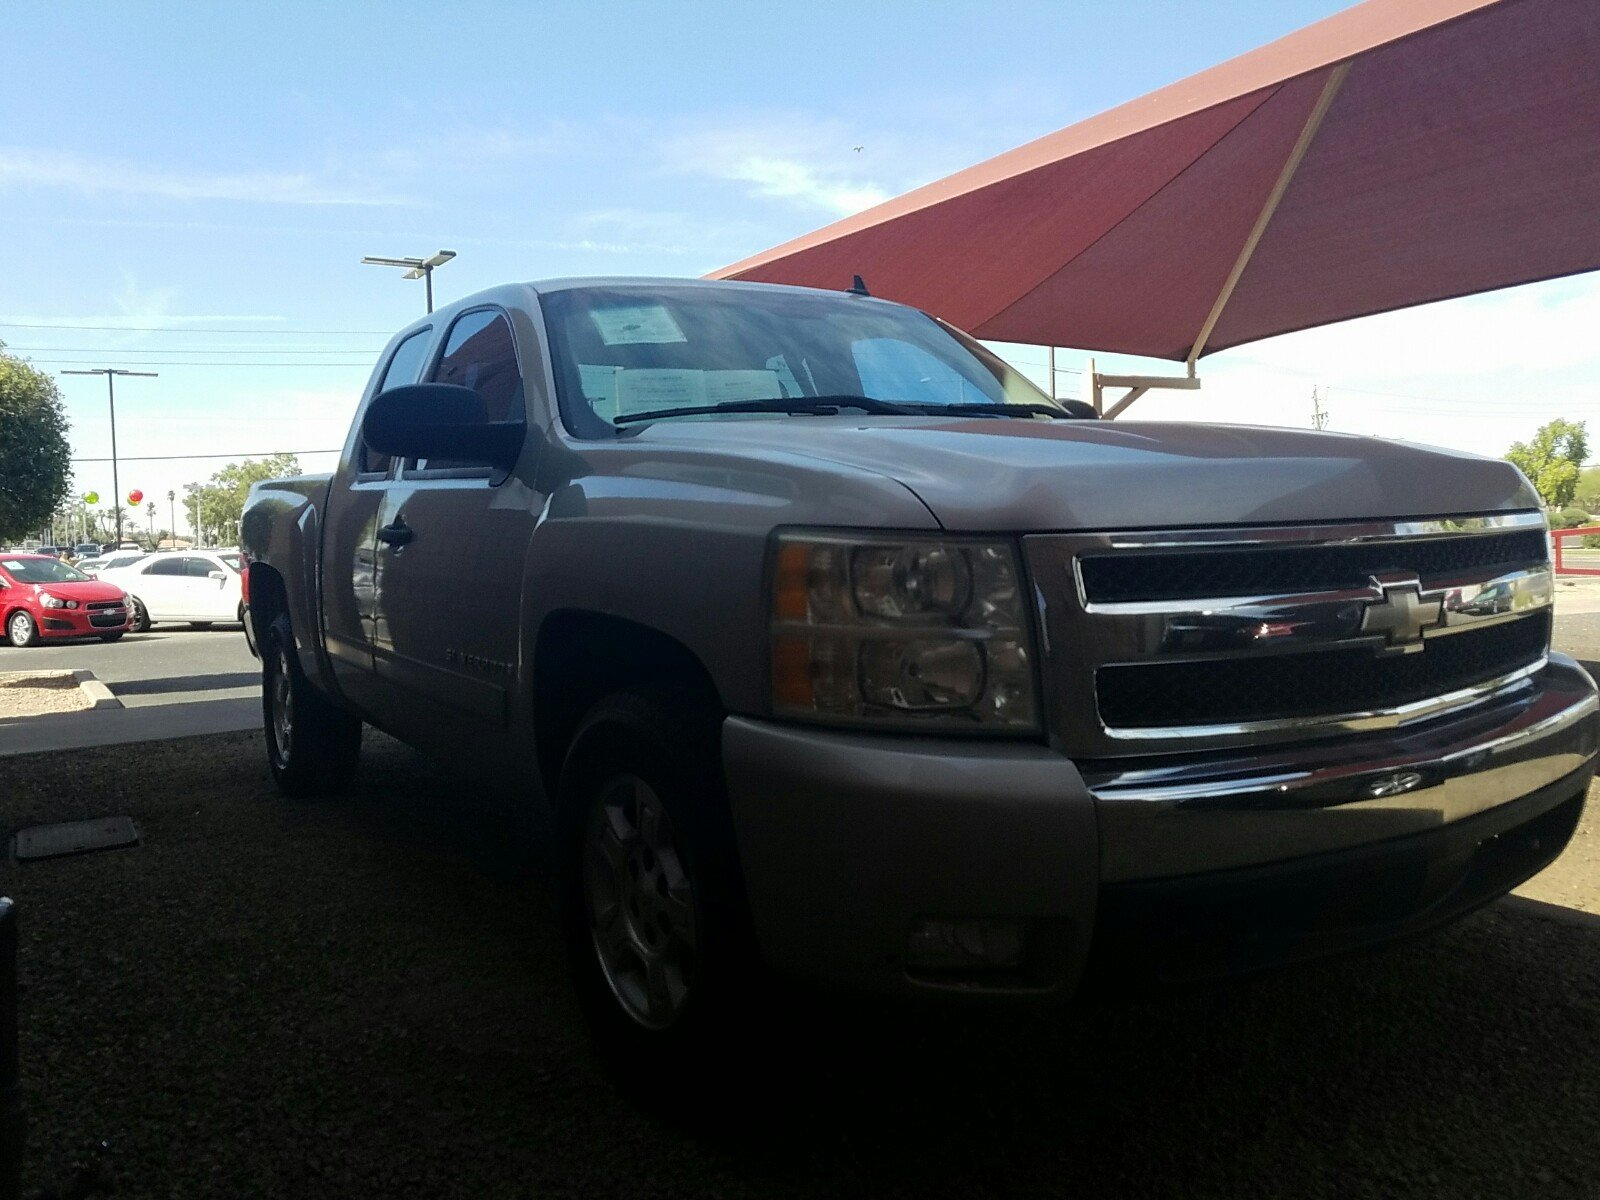 Pre-Owned 2007 Chevrolet Silverado 1500 Extended Cab Pickup in Phoenix  #5U6177 | Cactus Jack's Auto